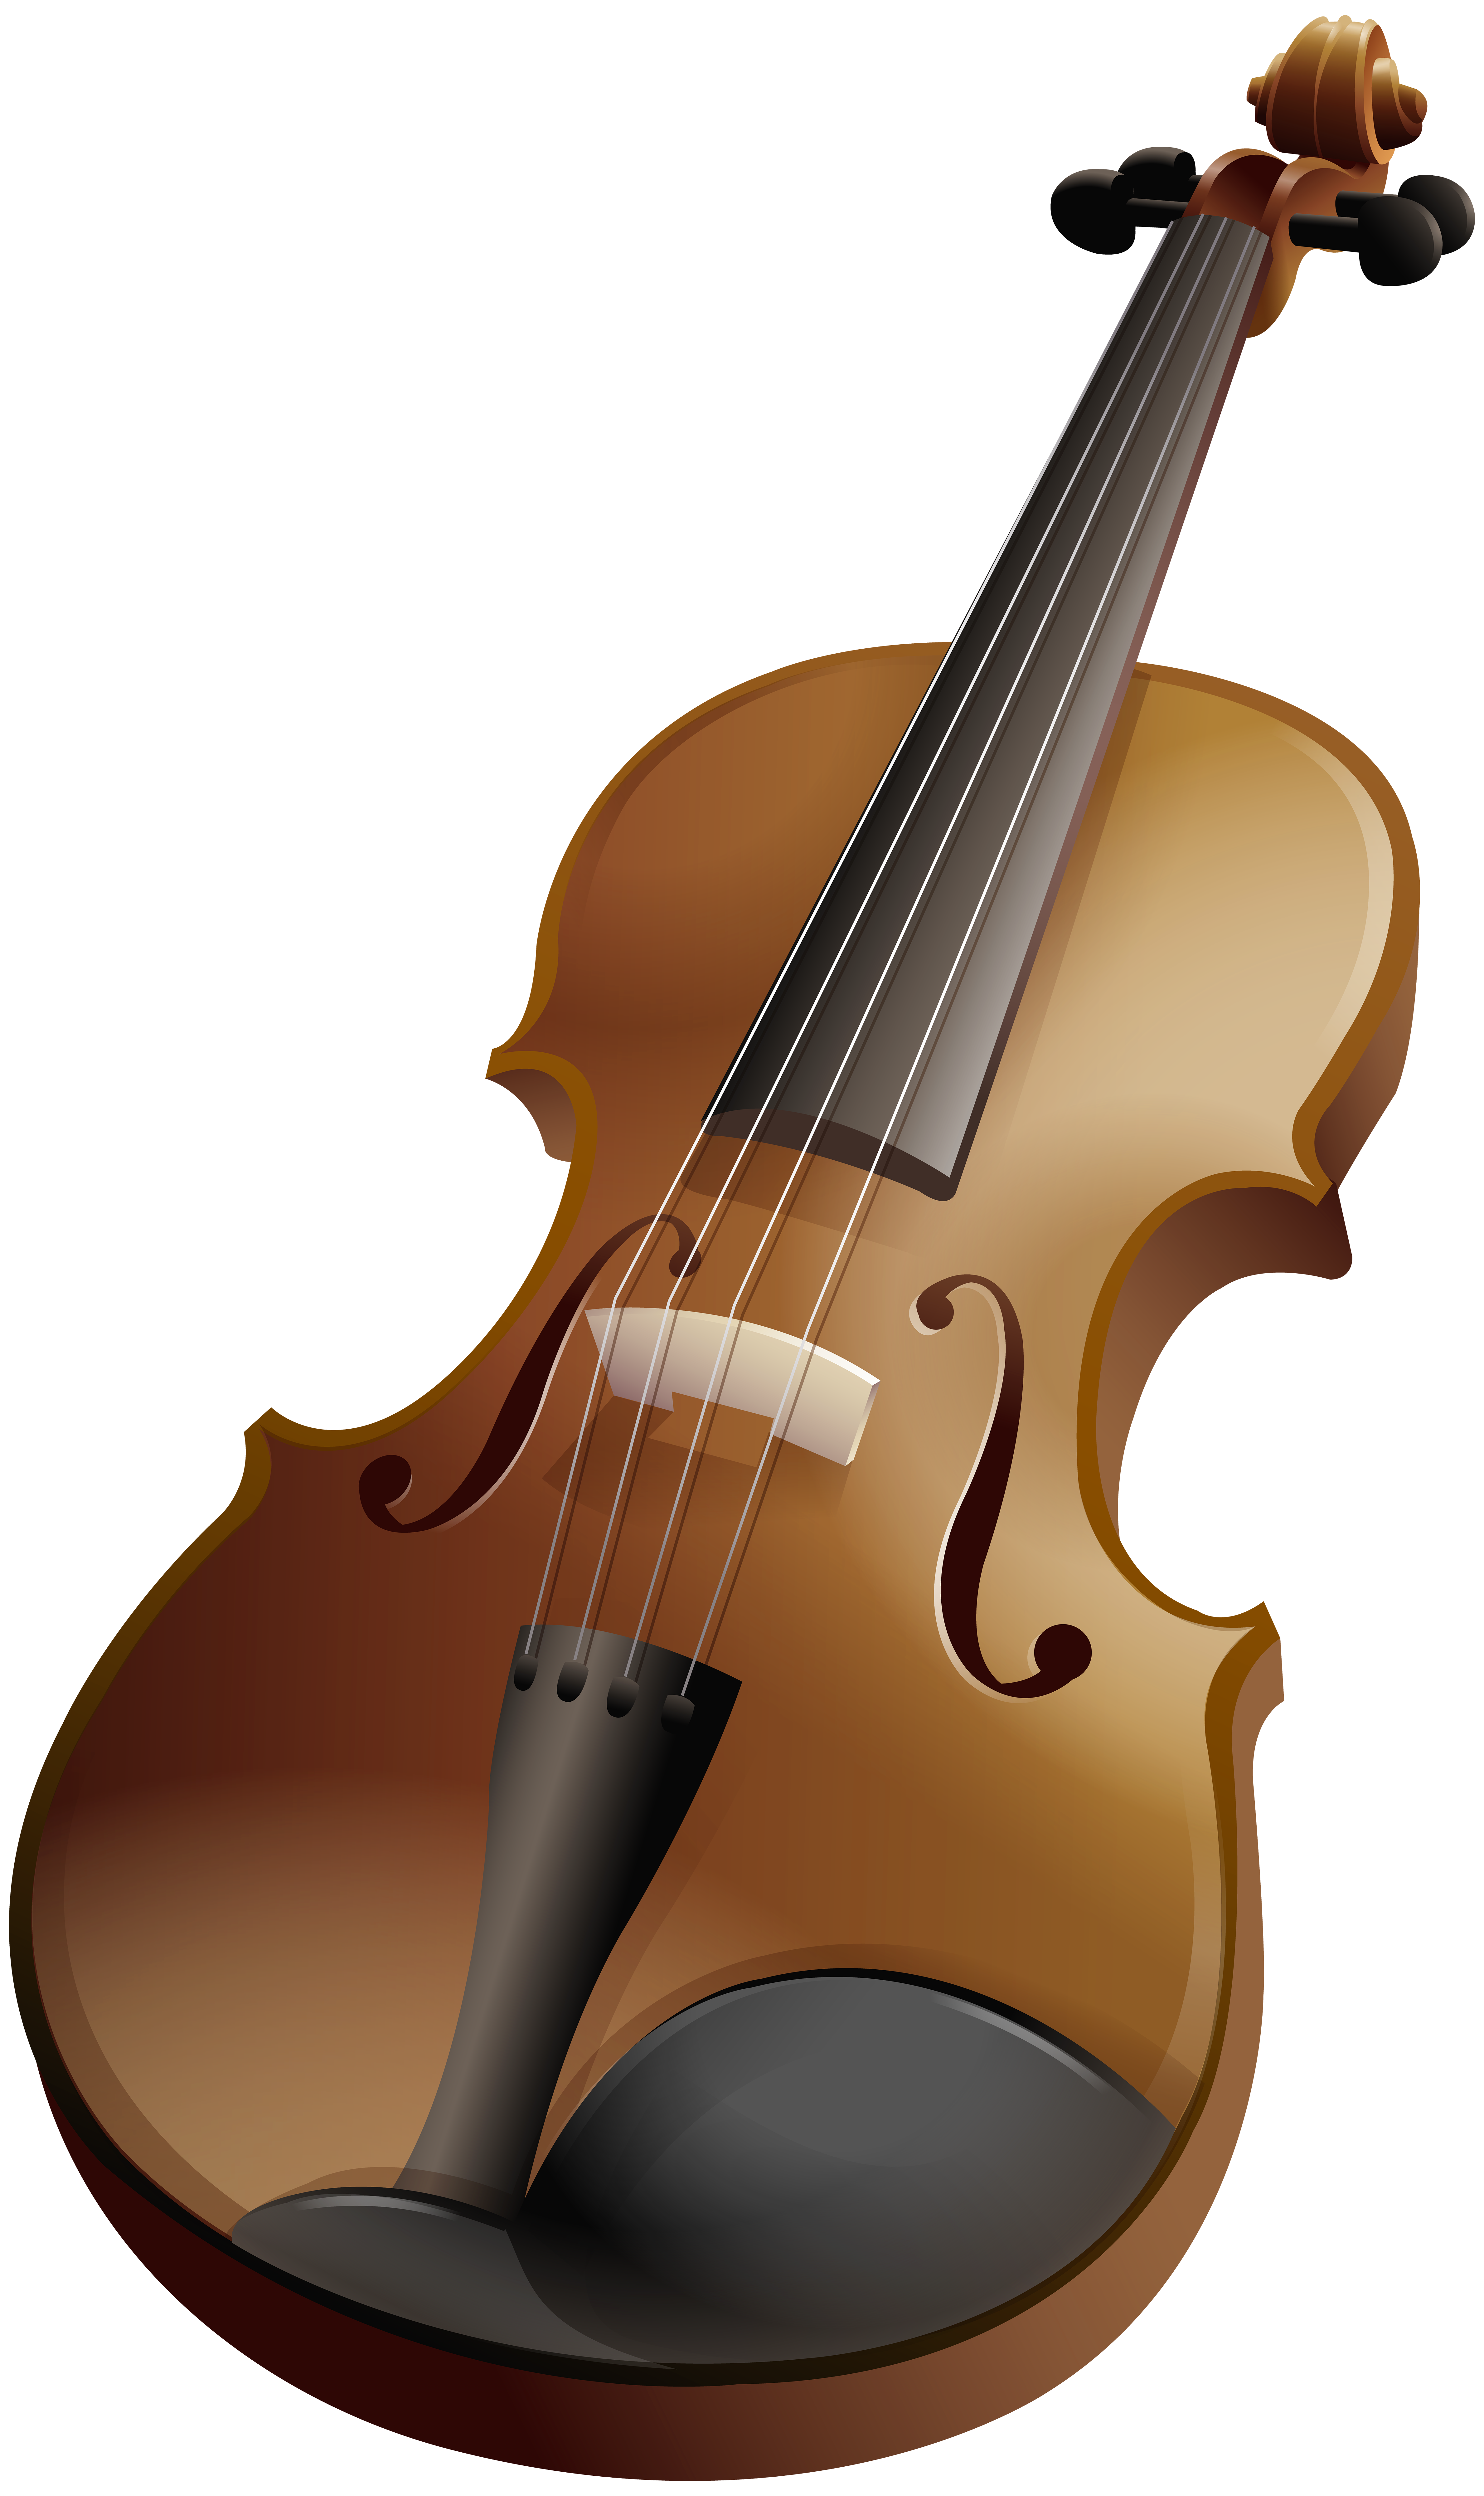 Violin png clipart royalty free Violin PNG Clip Art Image | Gallery Yopriceville - High ... royalty free